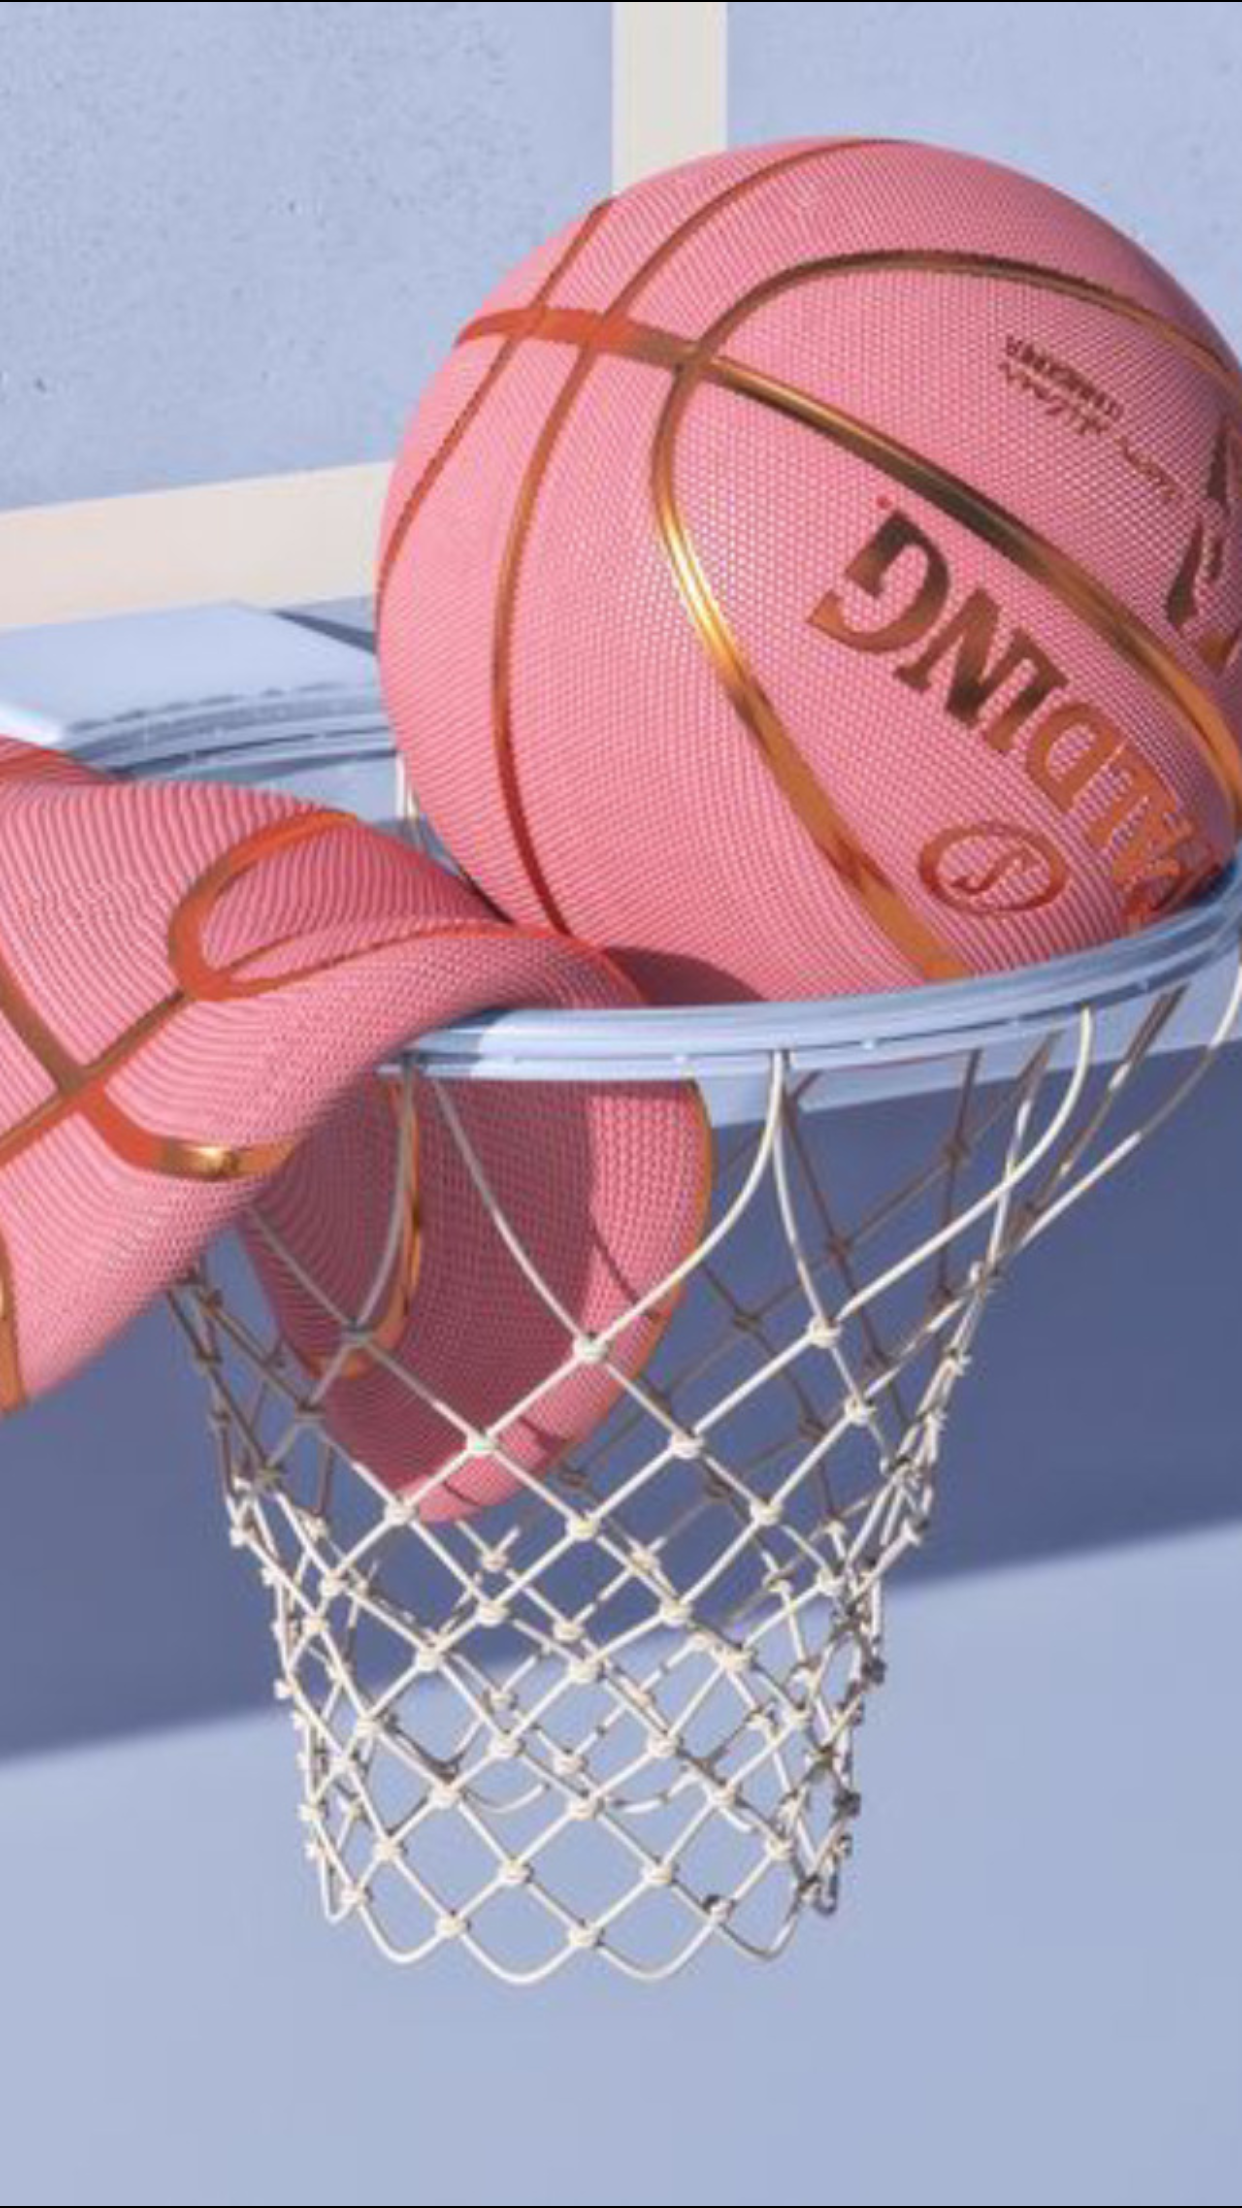 Pastel Aesthetic Pink Basketball What Is The Best Season For